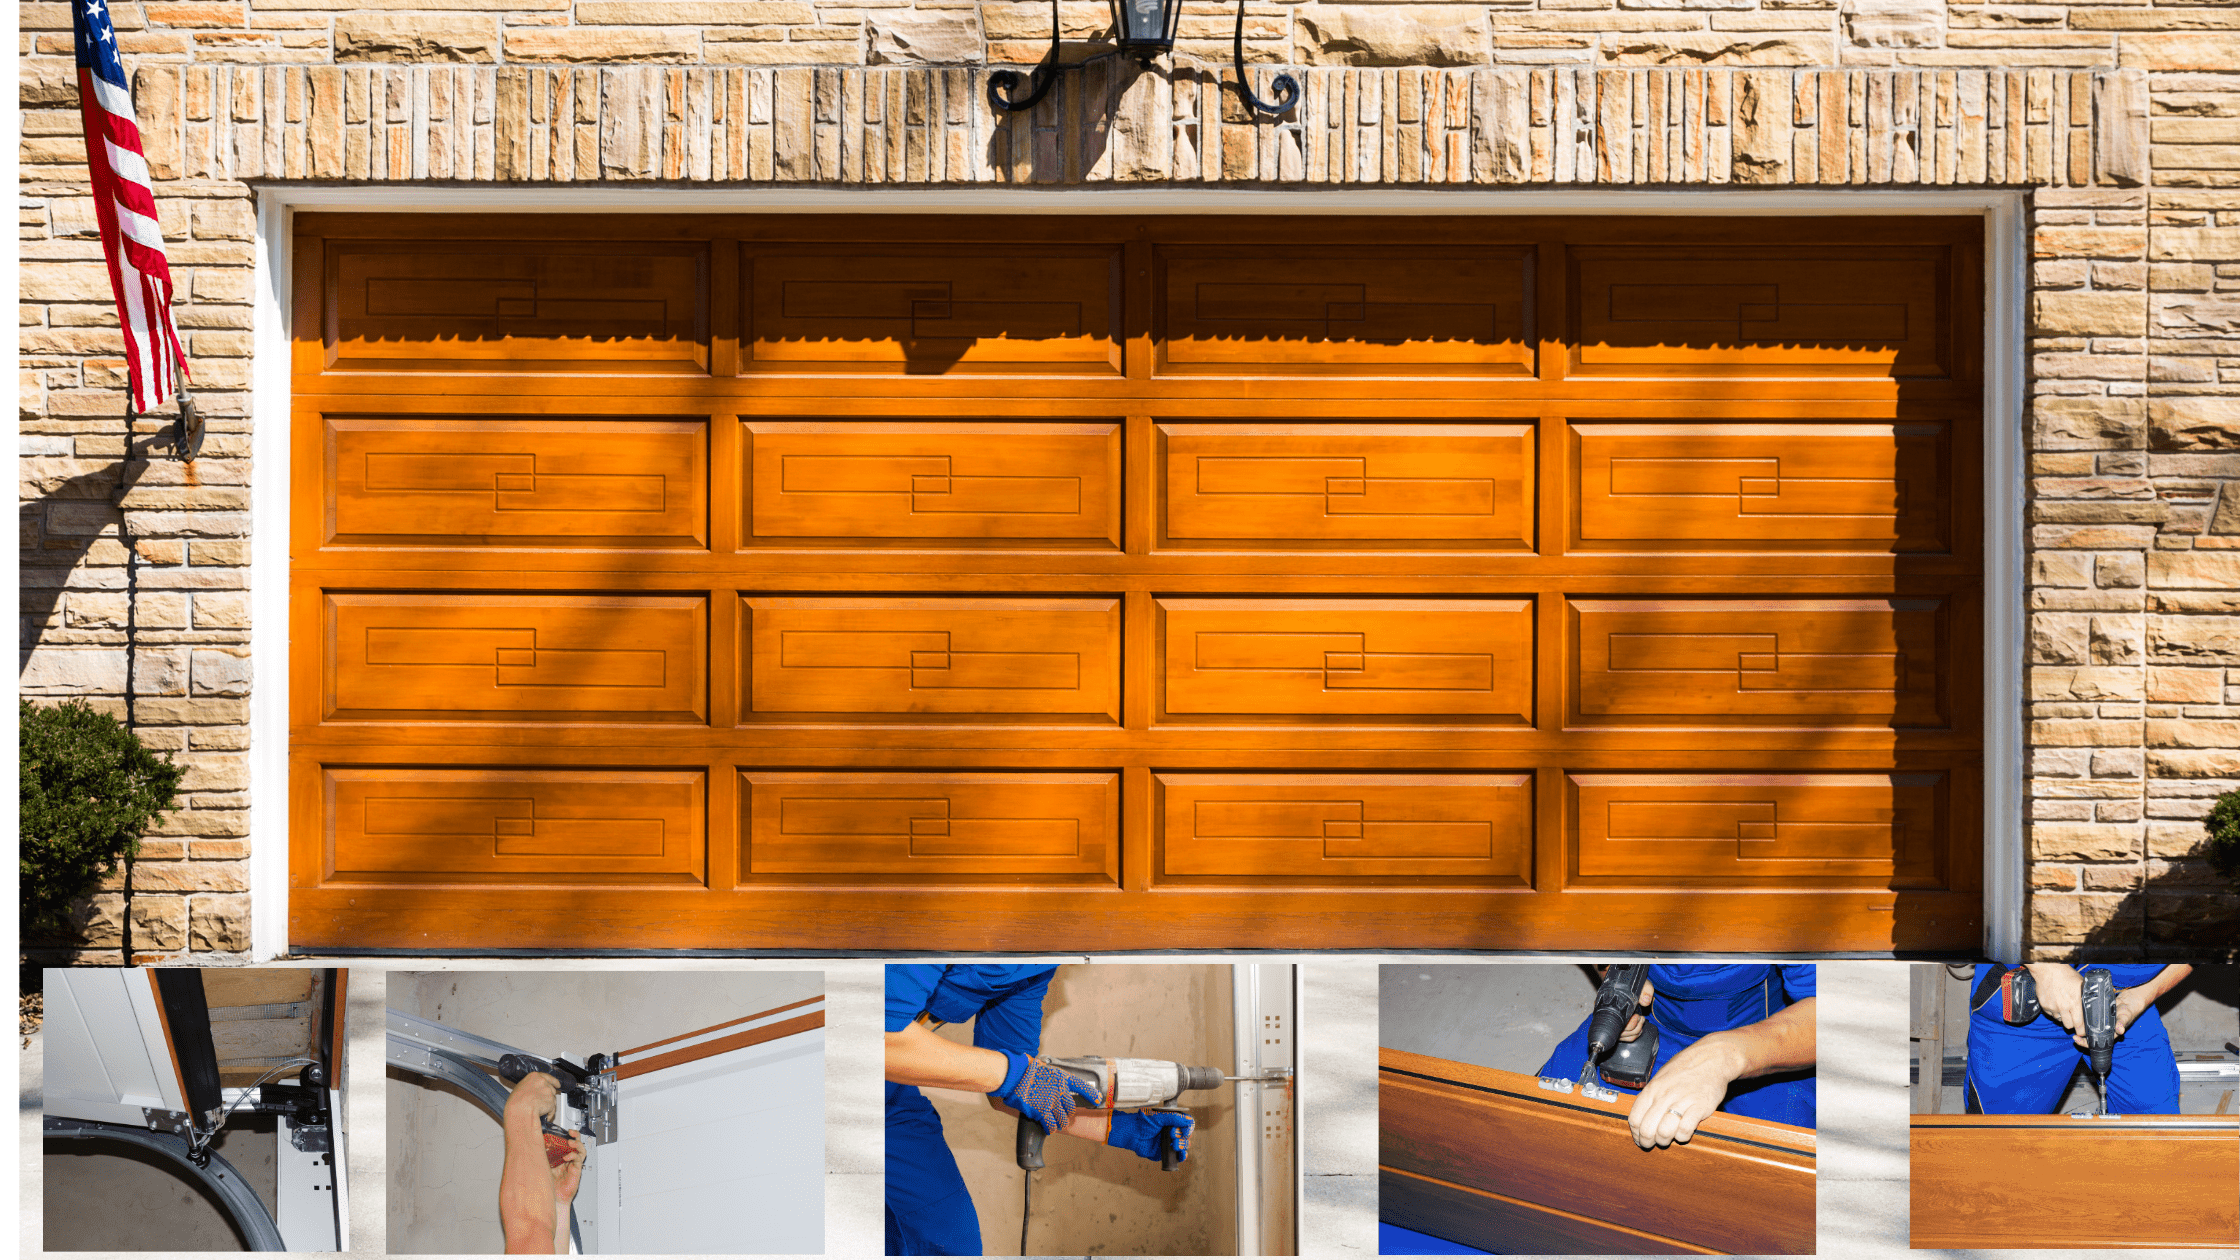 how to install garage door diy ti[s complete strp by step guide